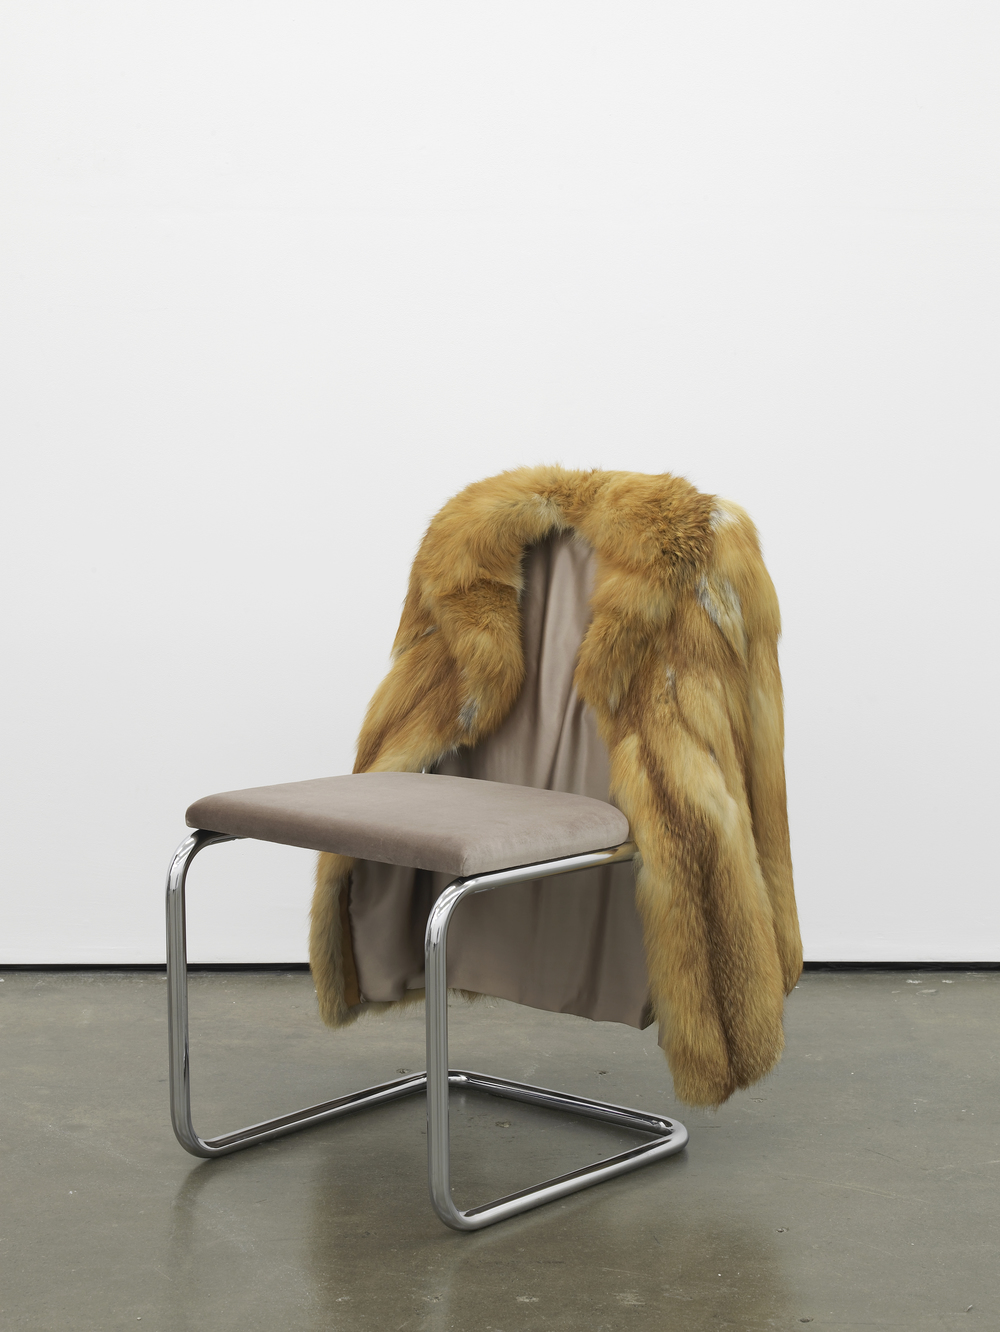 Untitled Chair - FXR-1 2015 Vintage fur, steel tubing, upholstery, silk and velvet 85 x 65 x 60 cm / 33.4 x 25.5 x 23.6 in